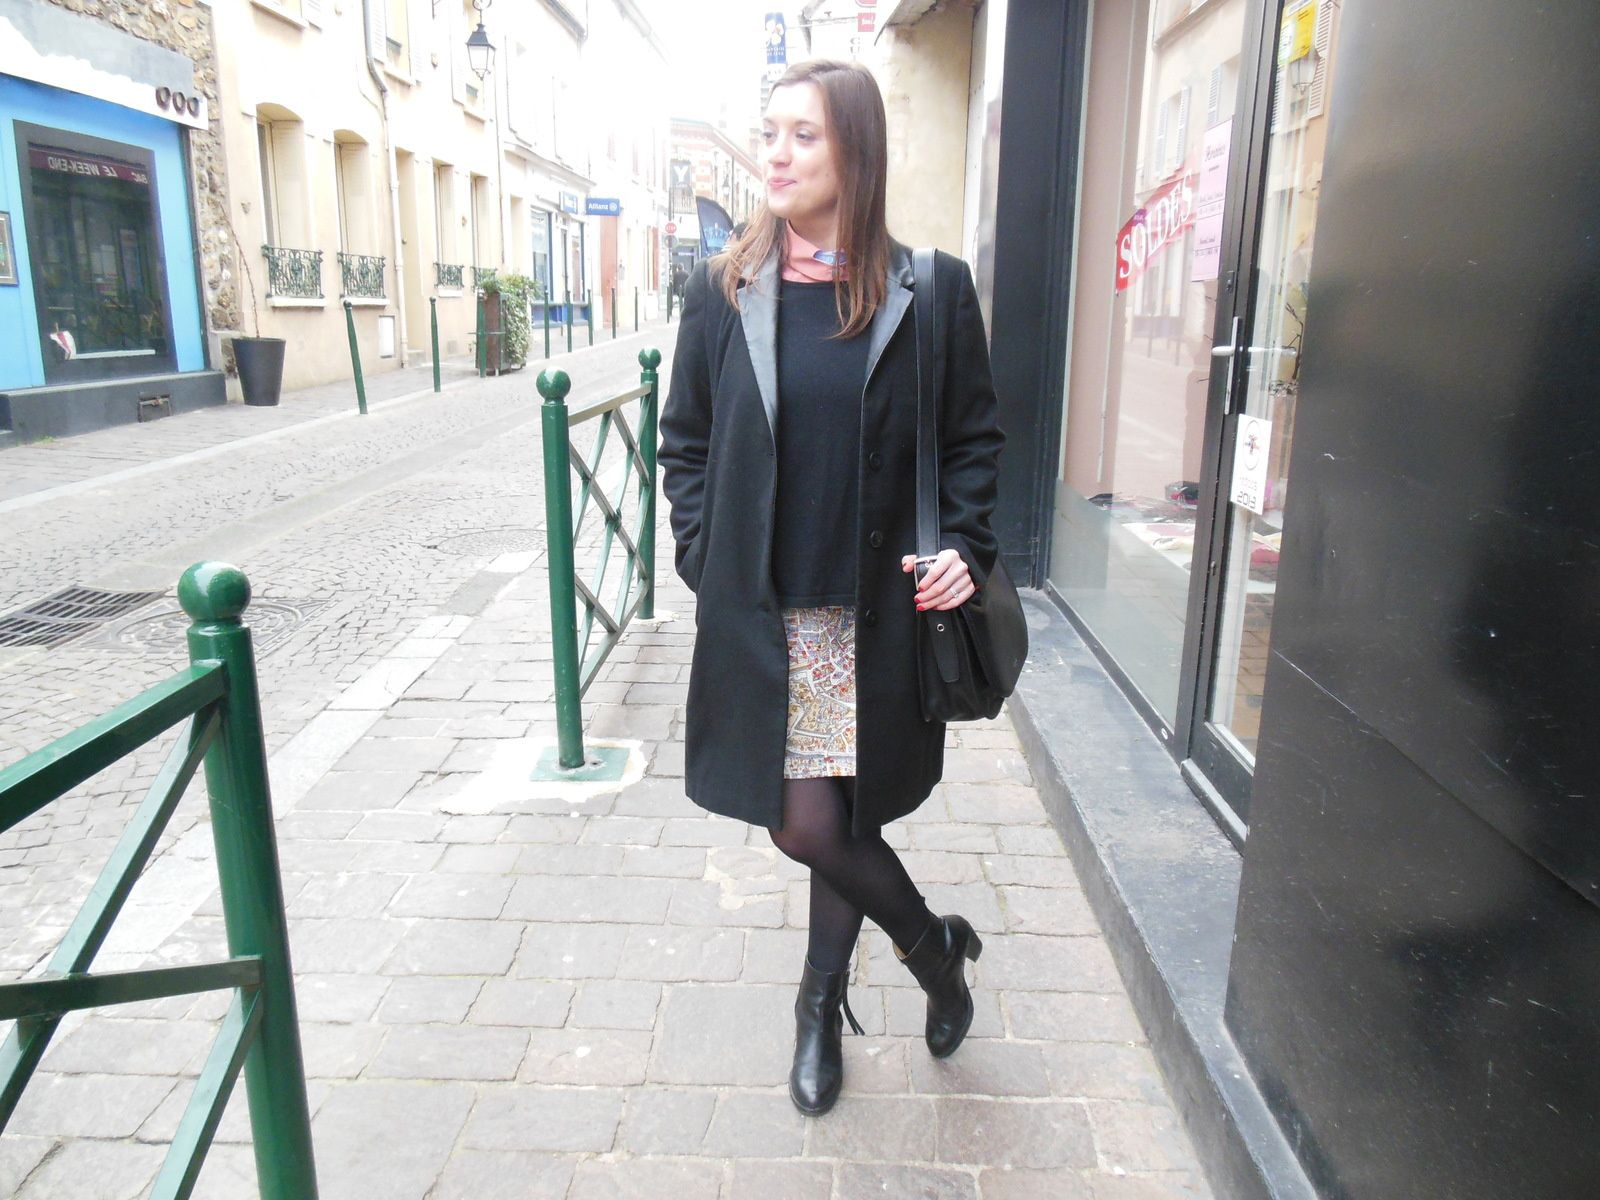 Manteau - Best Mountain // Col - Carven // Pull - H&M // Jupe - Carven // Collant - Dim // Pistols Boots - Acne // Legacy Patricias bag - Coach